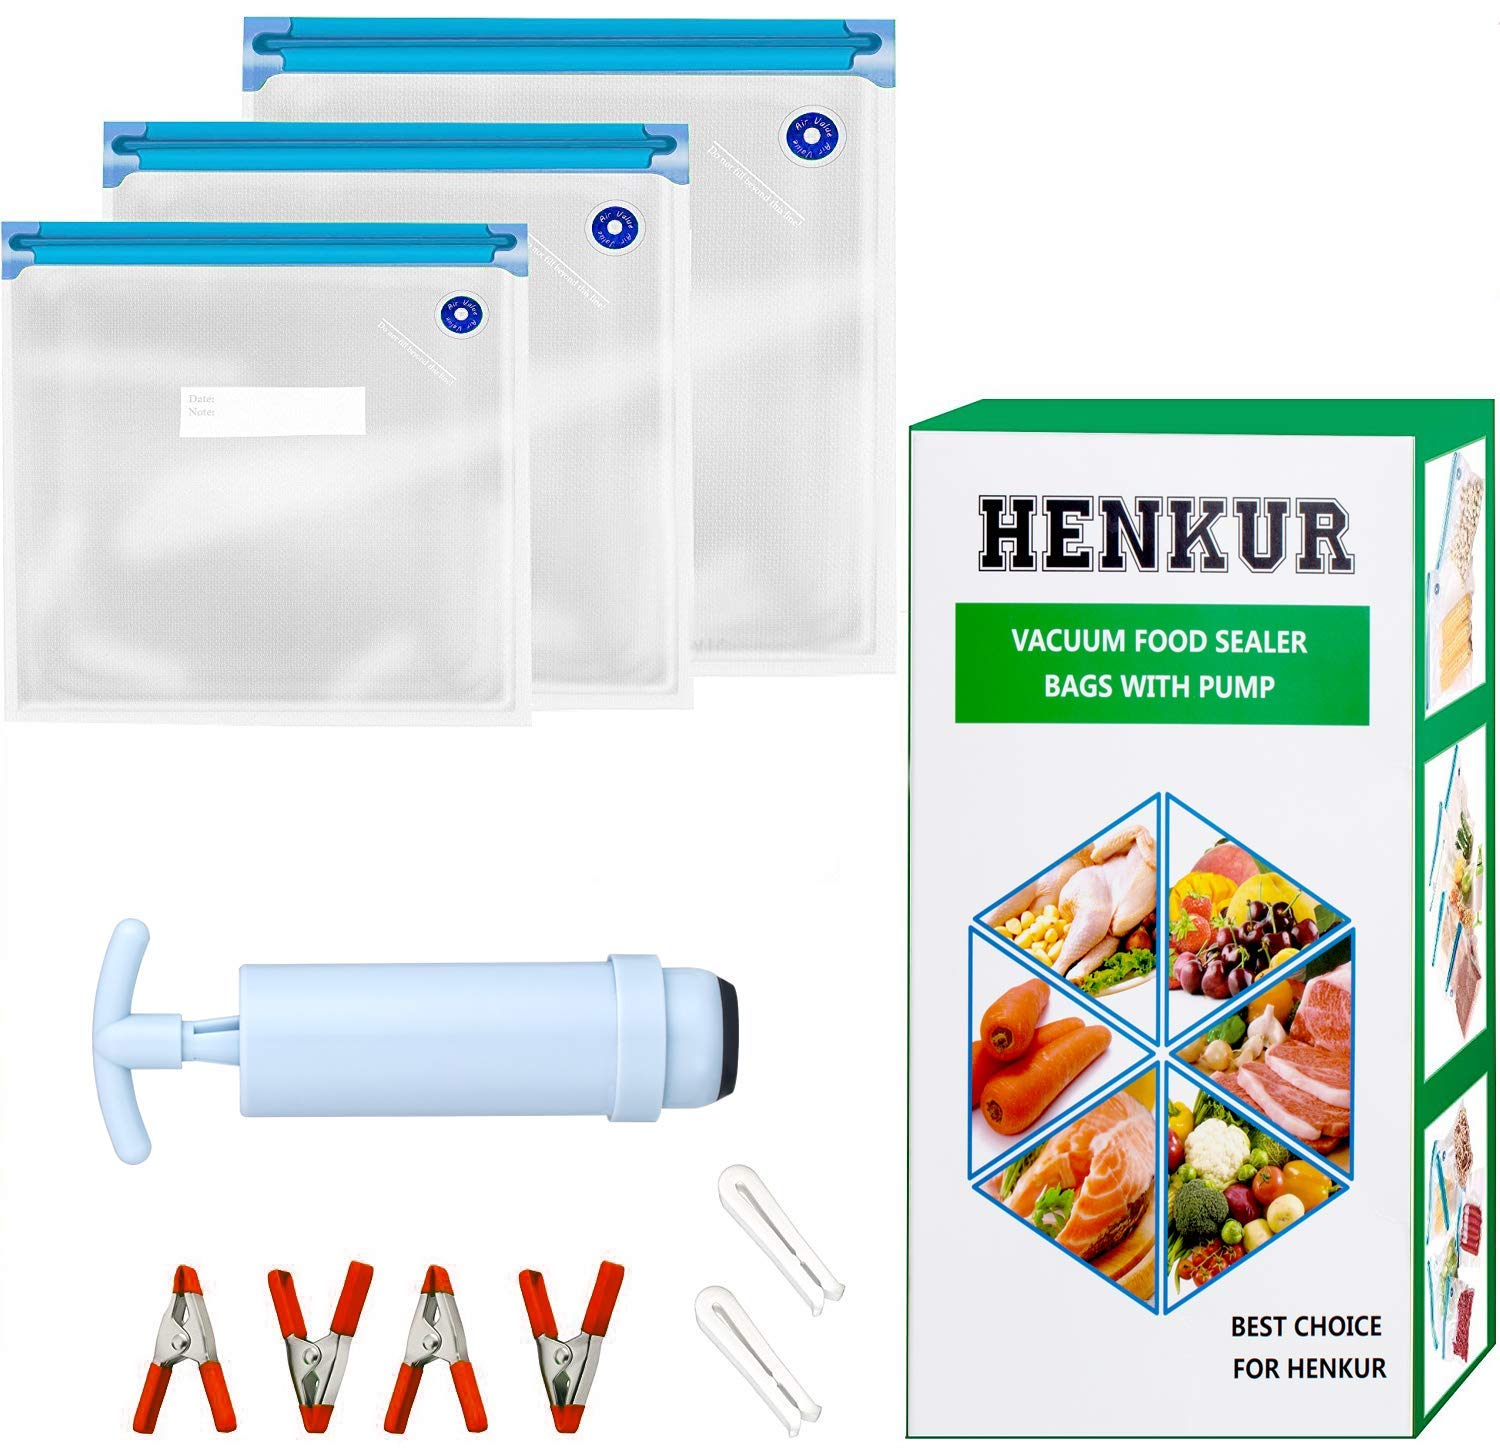 Sous Vide Bags BPA Free Reusable Kit for Anova and Joule Cookers,30 Vacuum Food Storage Bags(3 Sizes),1 Hand Pump and 2 Sealing Clips and 4 Sous Vide Bag Clips for Food Storage and Sous Vide Cooking by HENKUR